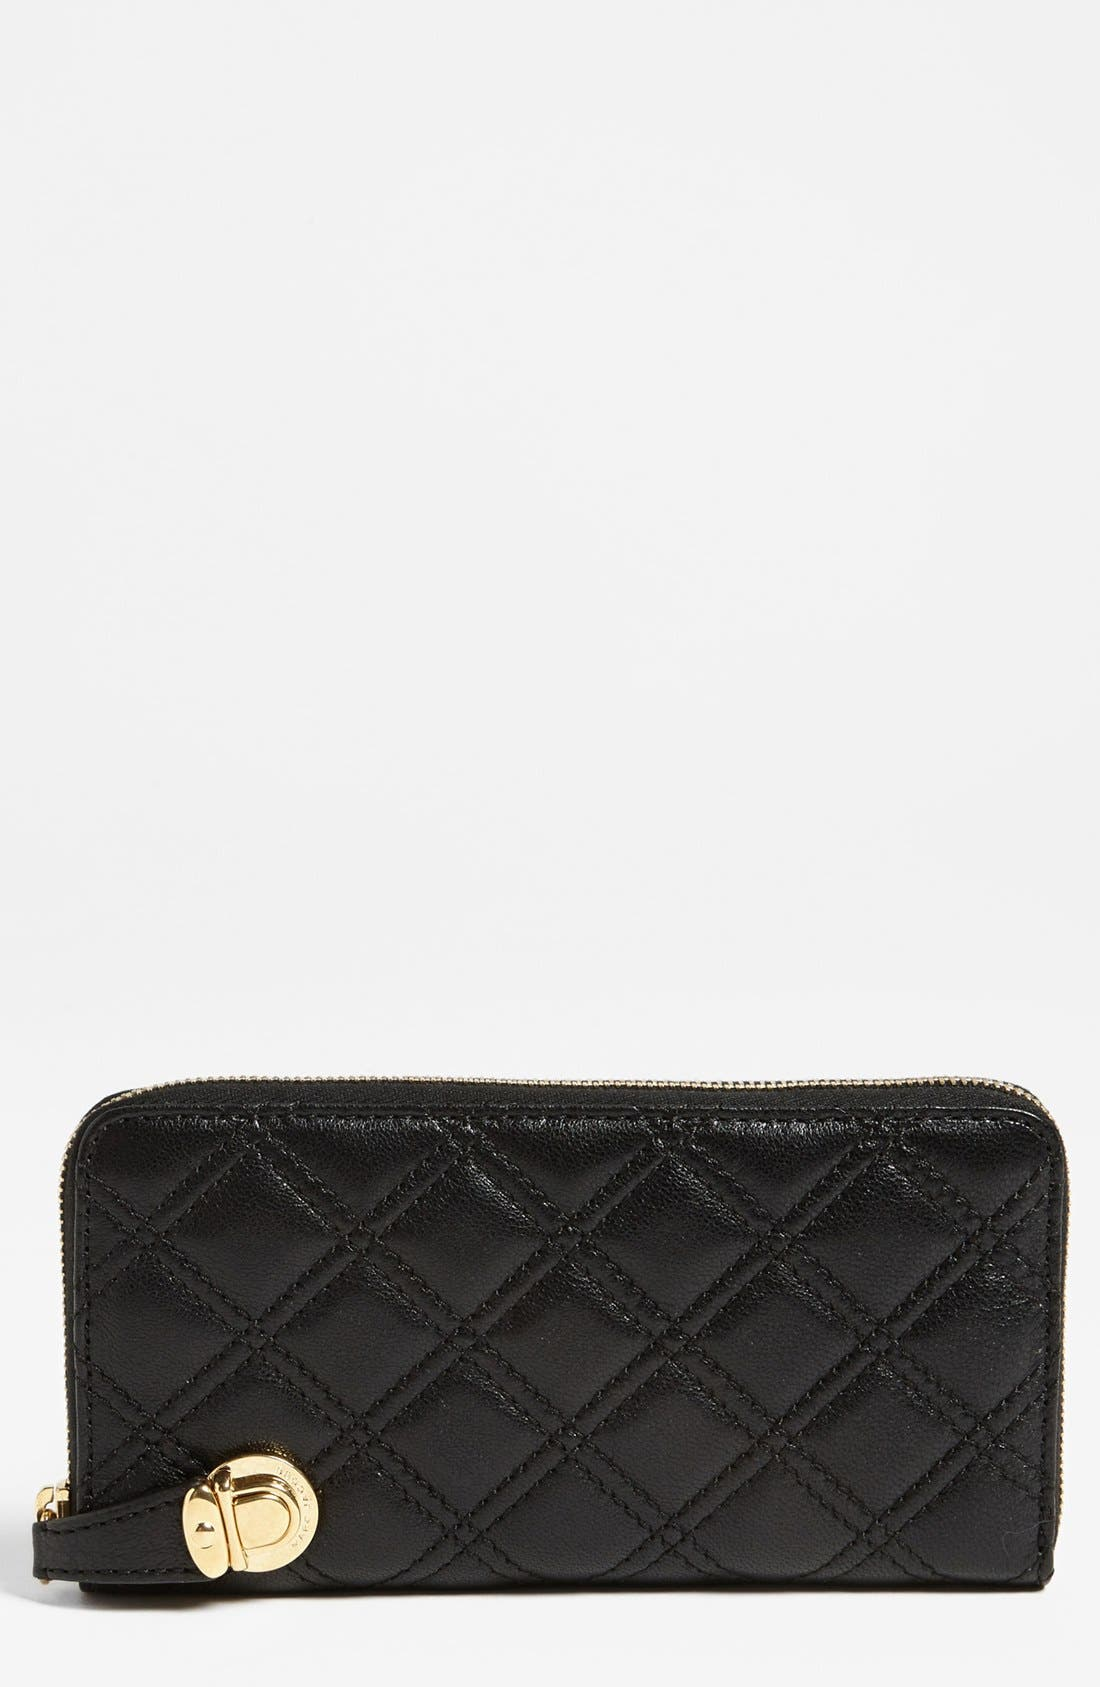 Alternate Image 1 Selected - MARC JACOBS 'Quilting Deluxe' Leather Wallet